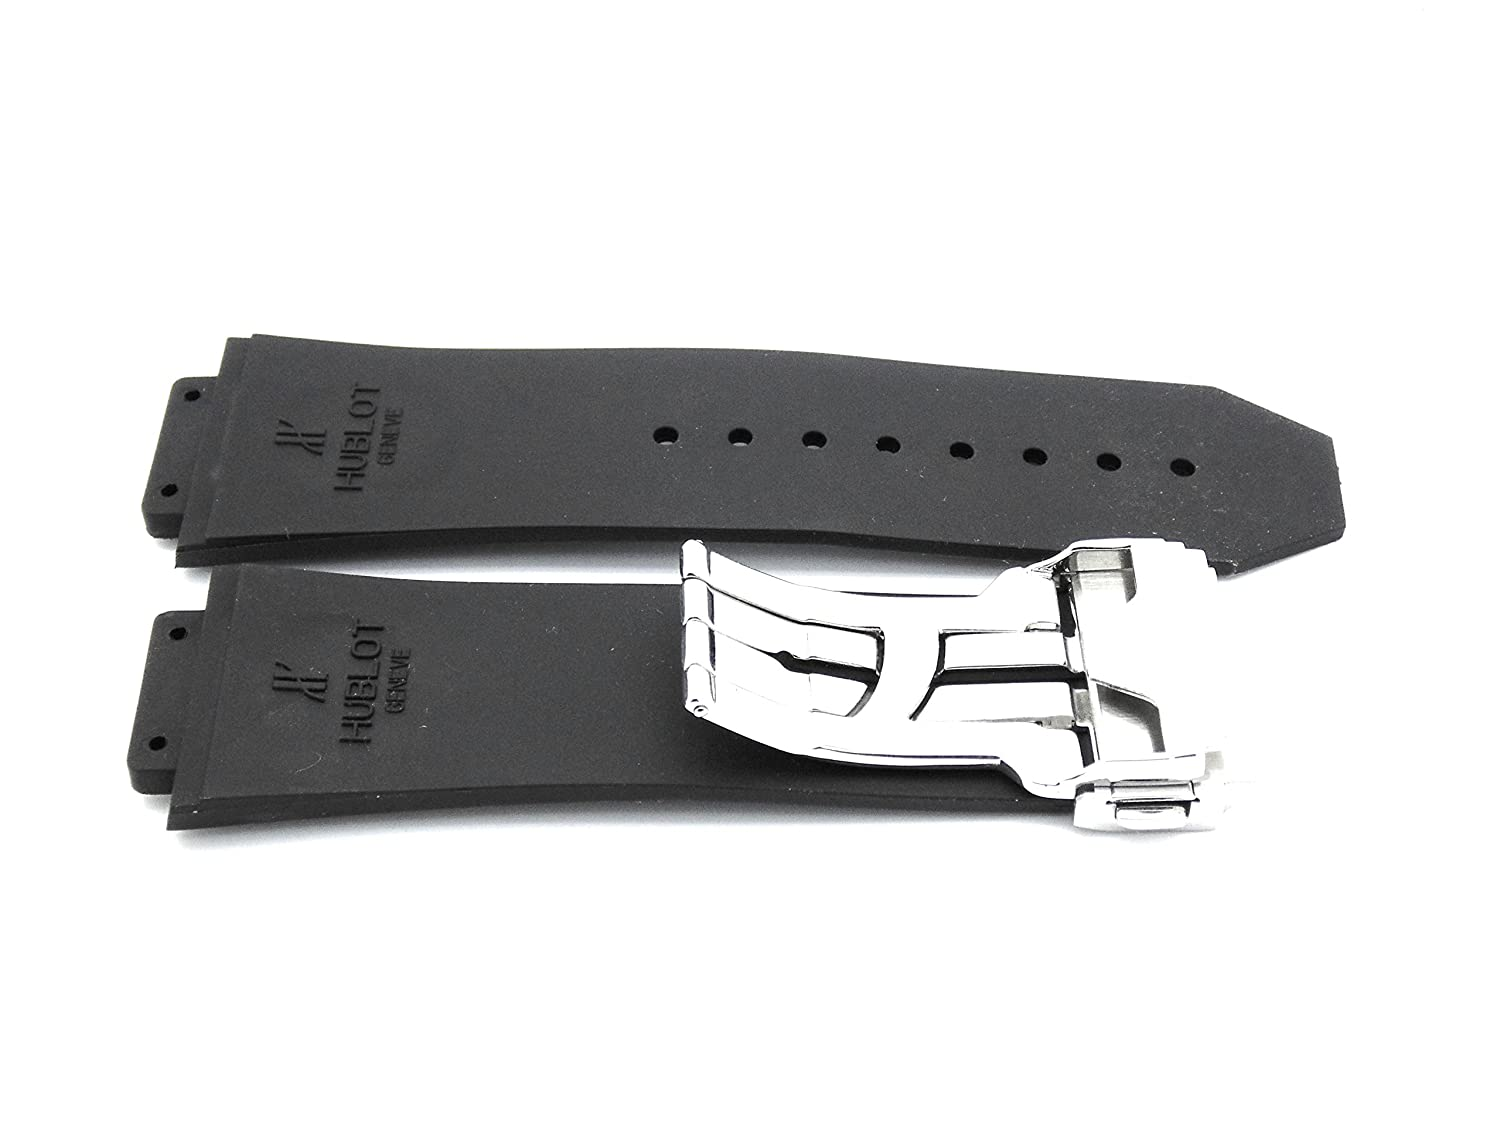 Amazon.com: NEW 28mm Black Rubber Strap With Steel Clasp MADE TO FIT TO Hublot BIG BANG: Home & Kitchen